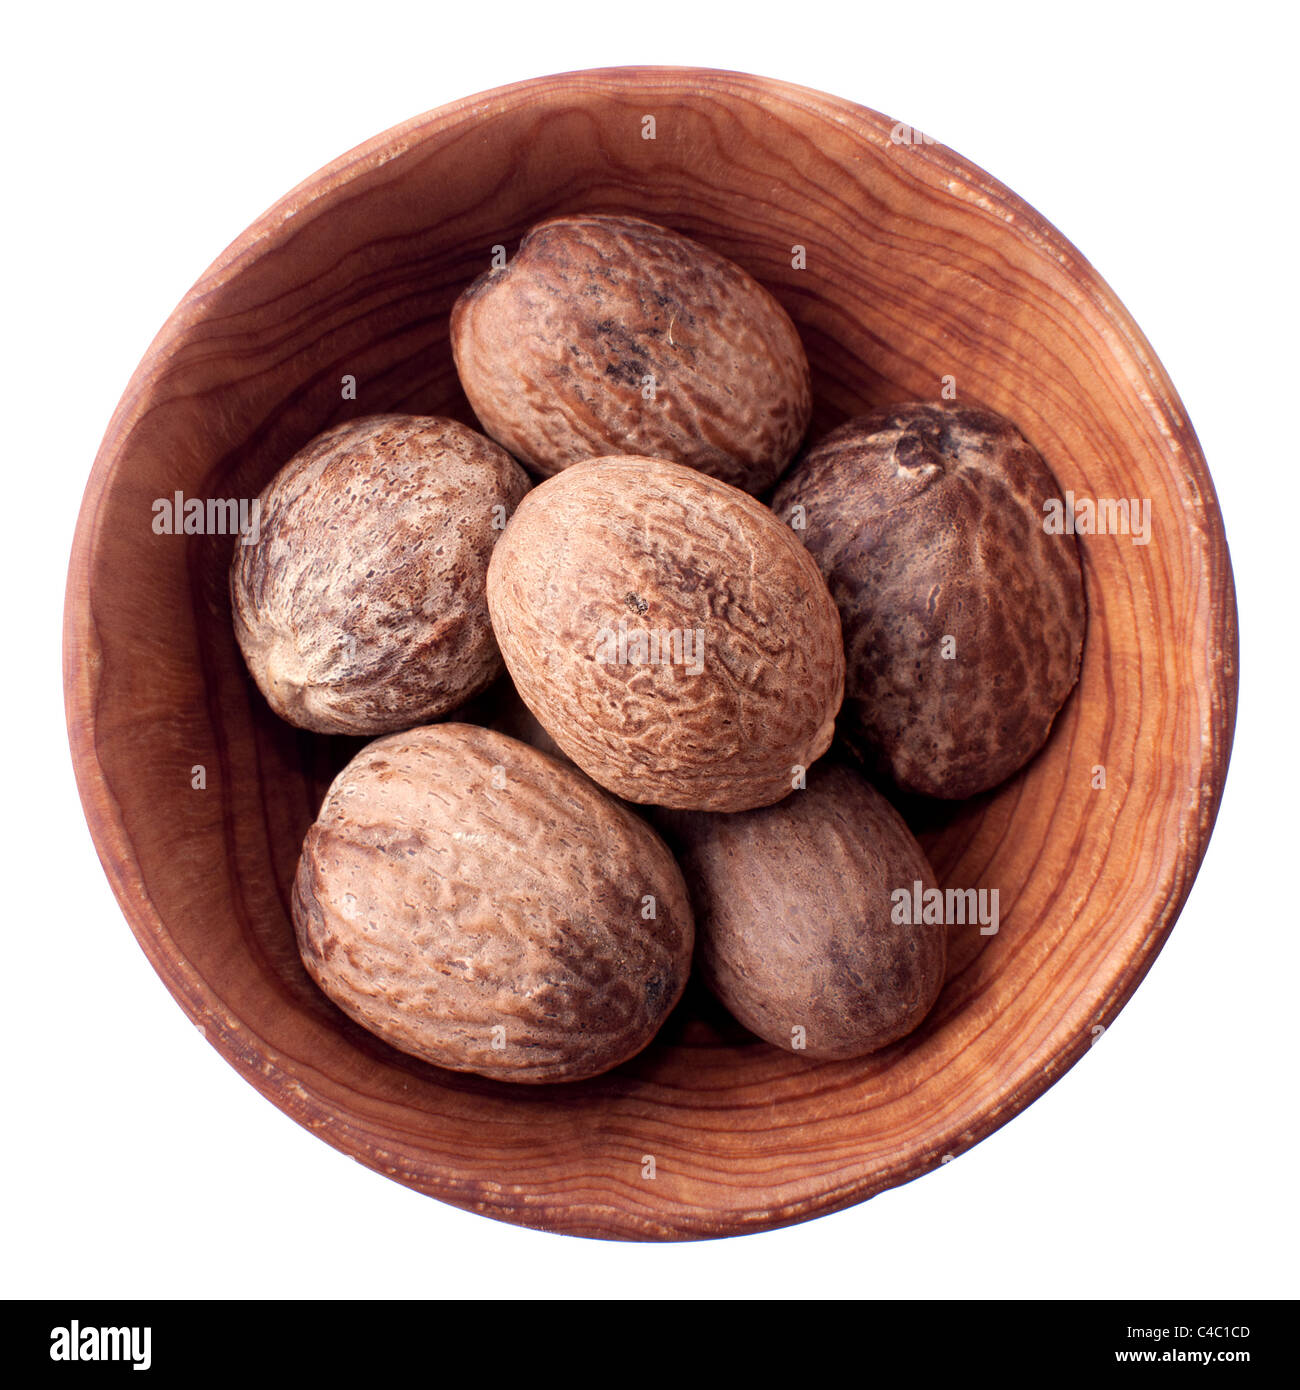 Nutmeg in a wooden bowl isolated on white Stock Photo